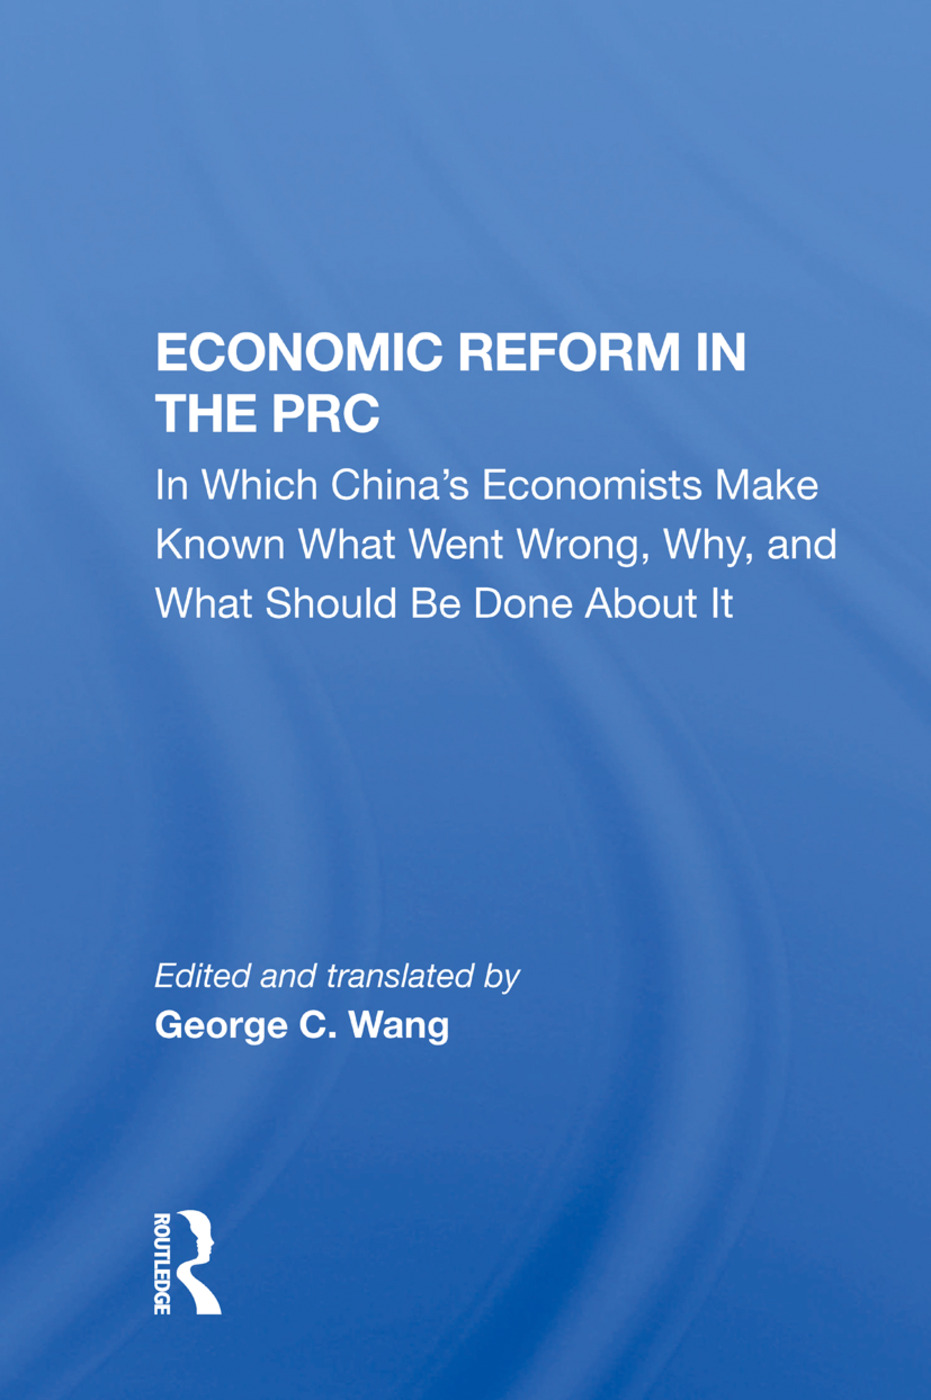 Economic Reform In The Prc: In Which China's Economists Make Known What Went Wrong, Why, And What Should Be Done About It, 1st Edition (Hardback) book cover